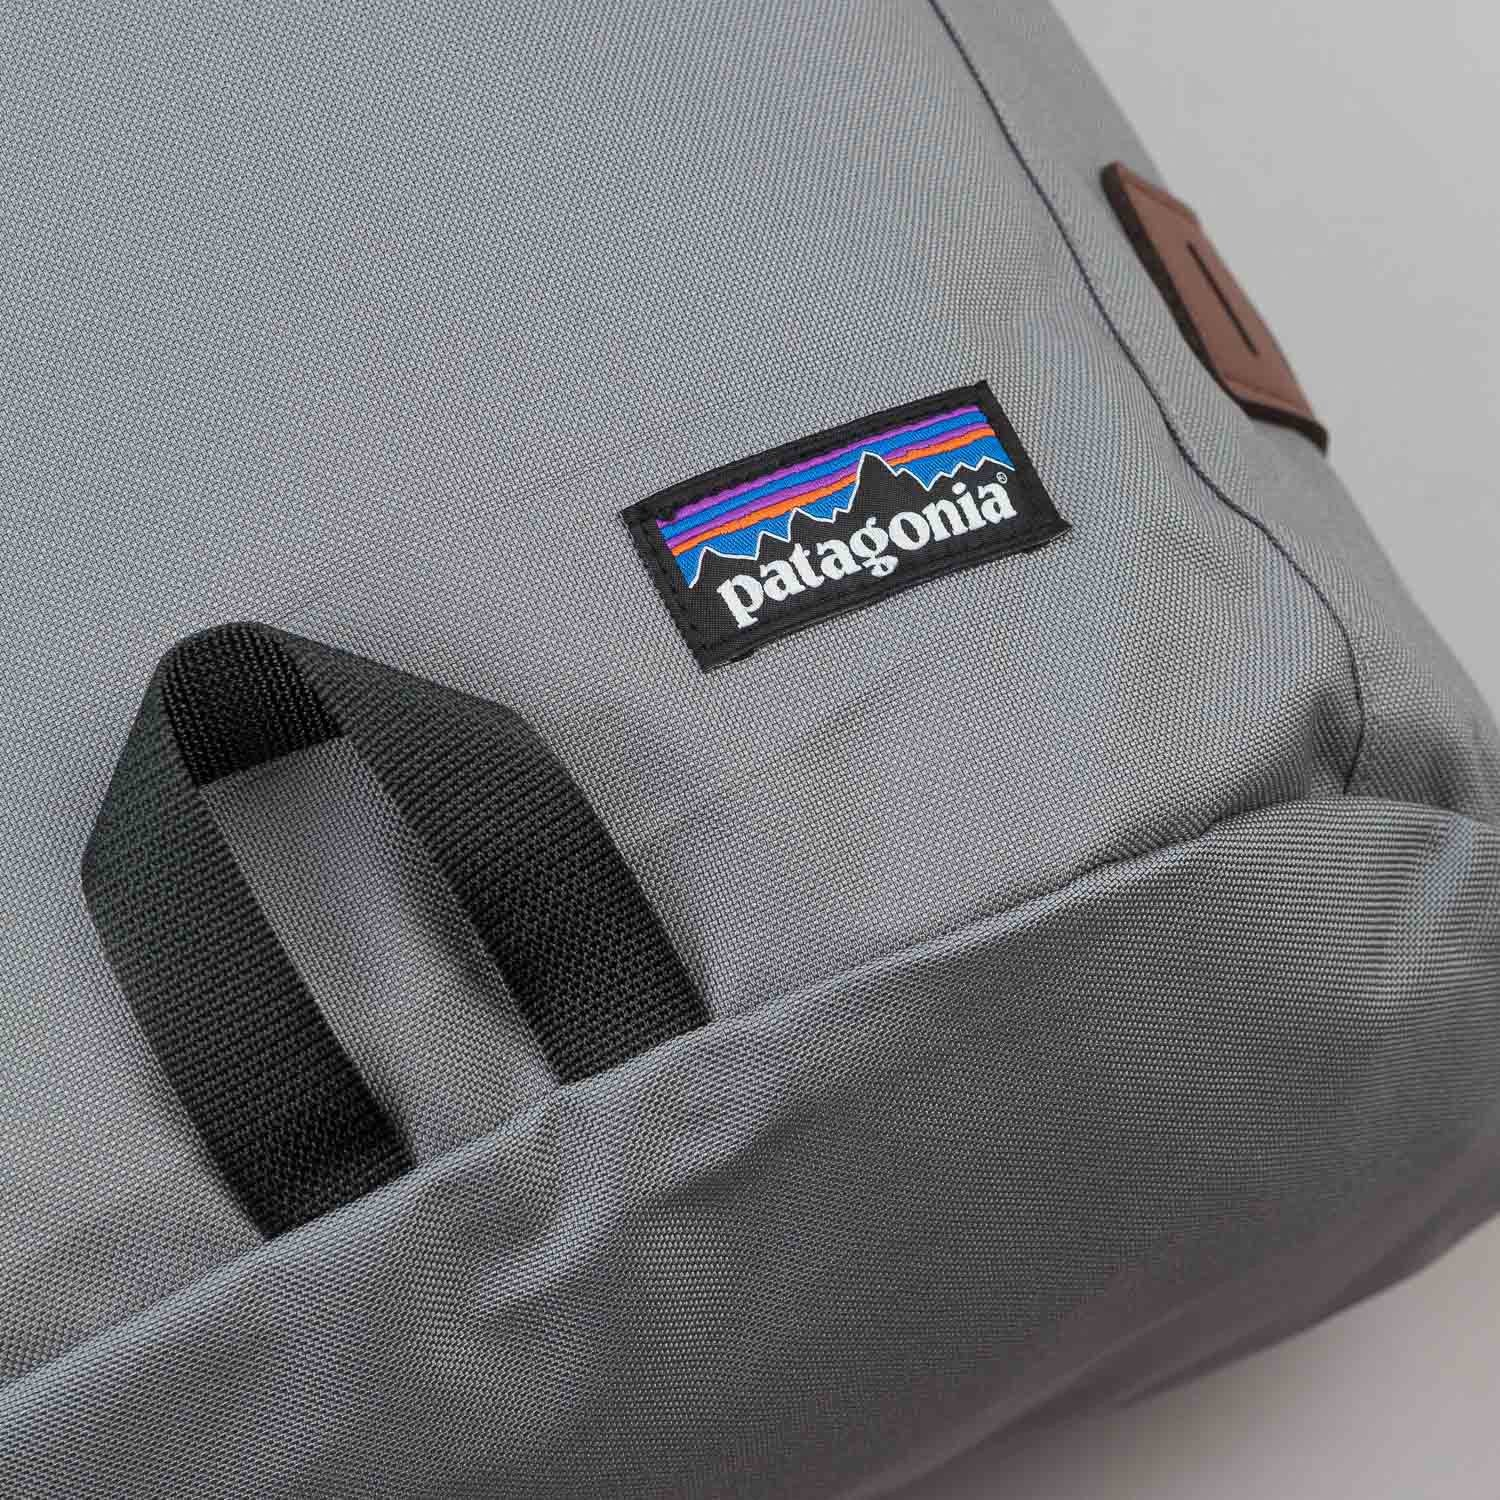 Patagonia Toromiro Backpack - Feather Grey